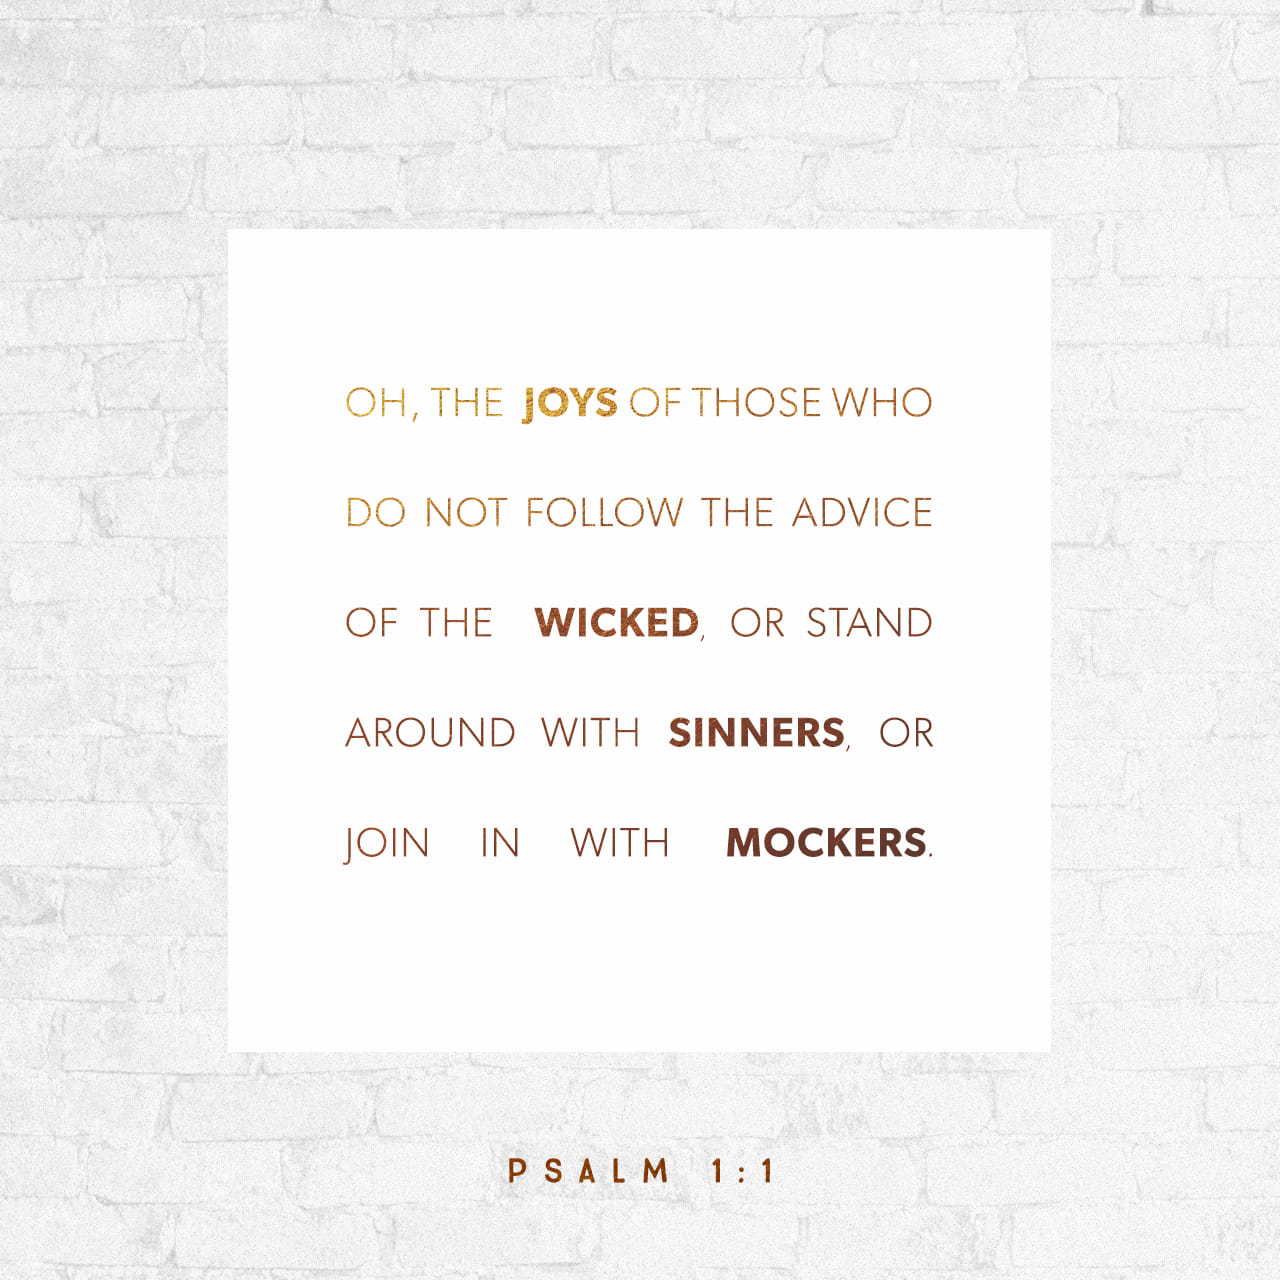 Psalms 1:1 Blessed is the man that walketh not in the counsel of the wicked, Nor standeth in the way of sinners, Nor sitteth in the seat of scoffers | American Standard Version (ASV)